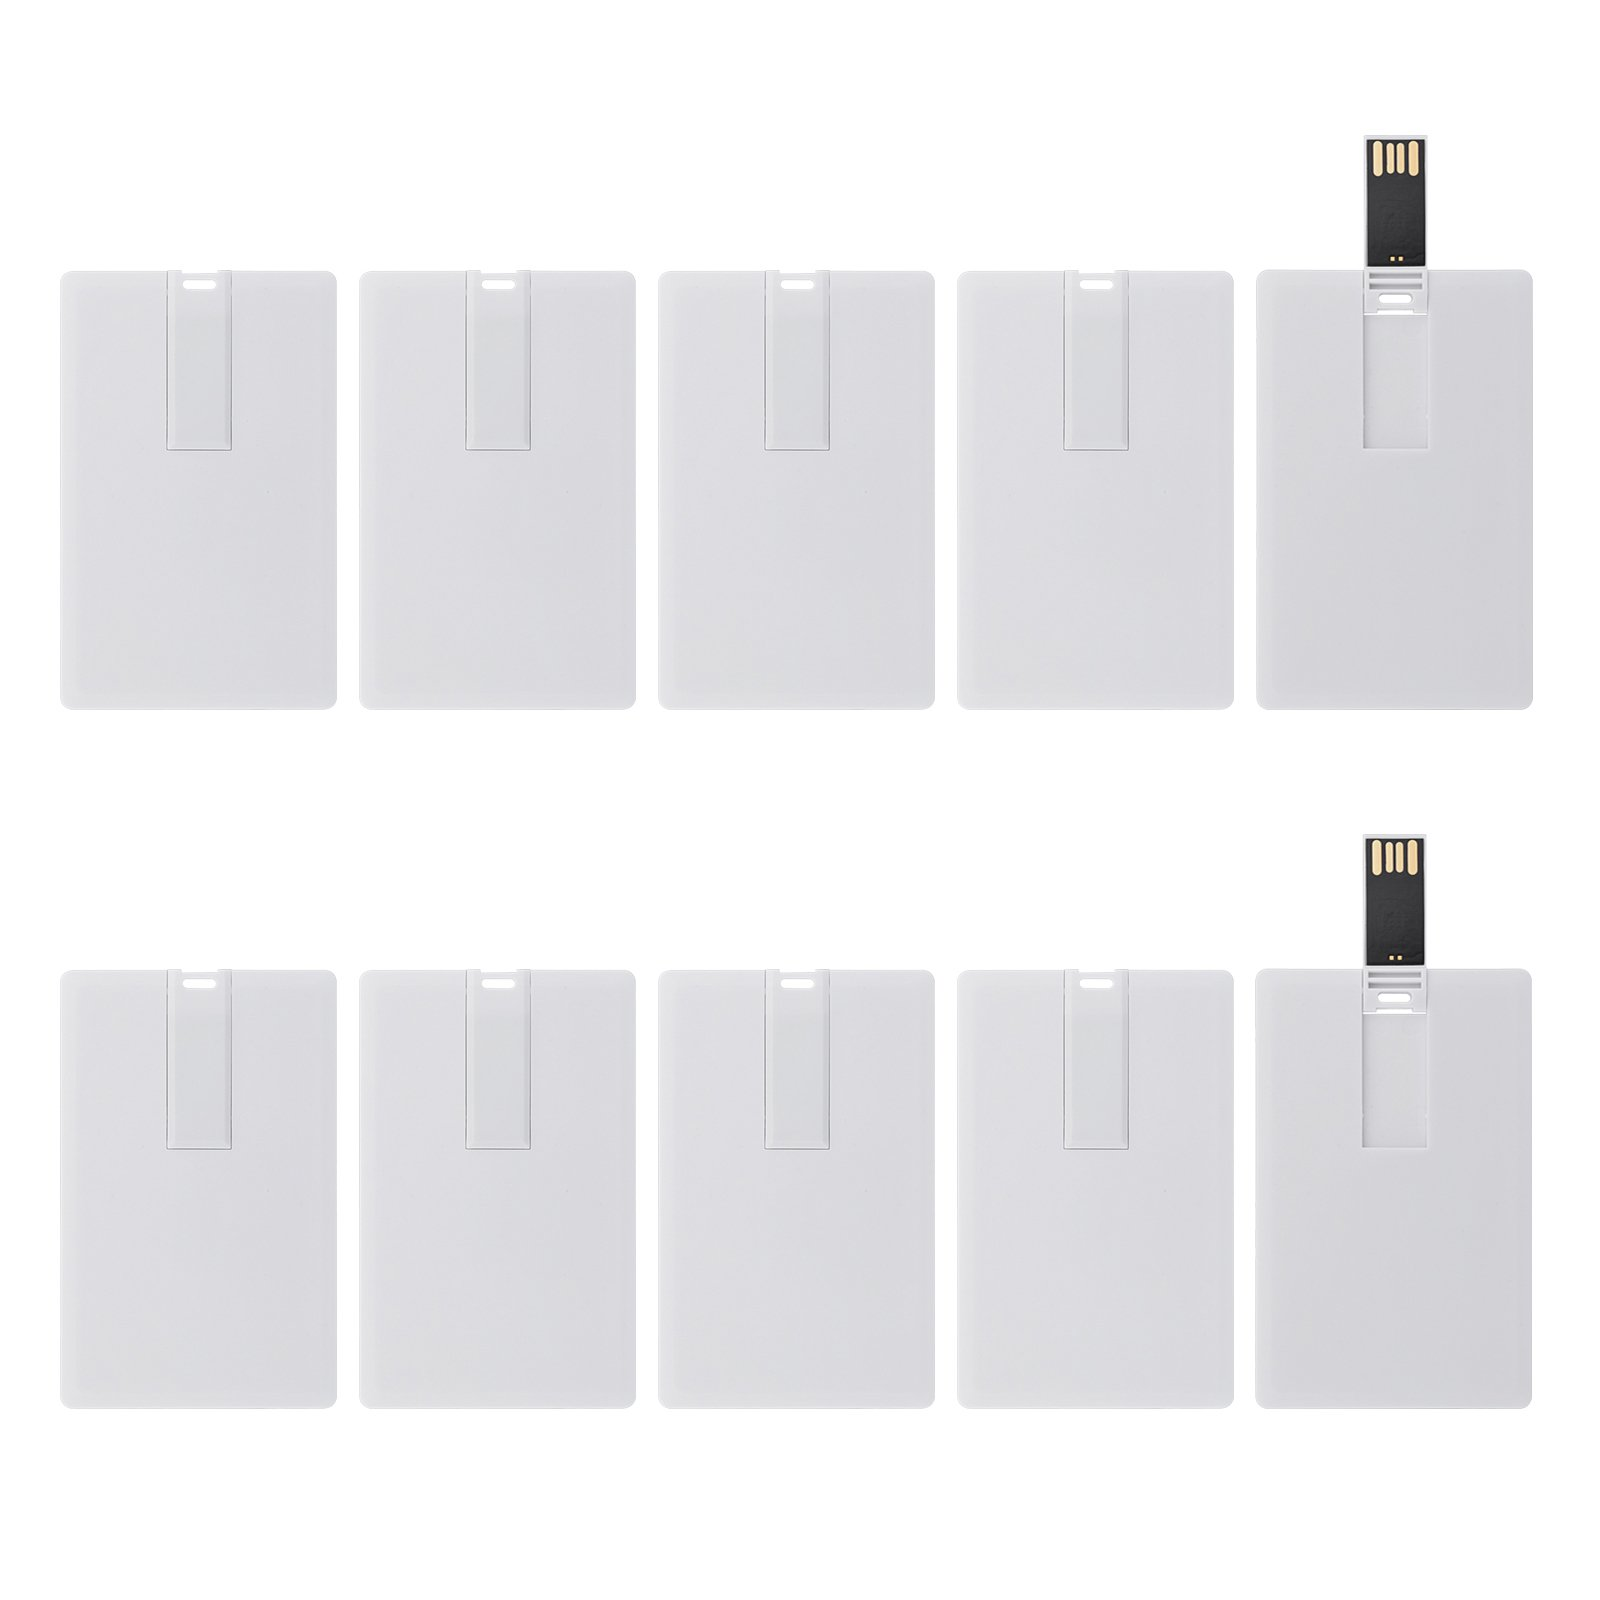 KEXIN 100pcs Bulk 1GB Credit USB Flash Drive Bulk Business Credit Card Shape USB Drives Memory Stick Pendrive 1G White